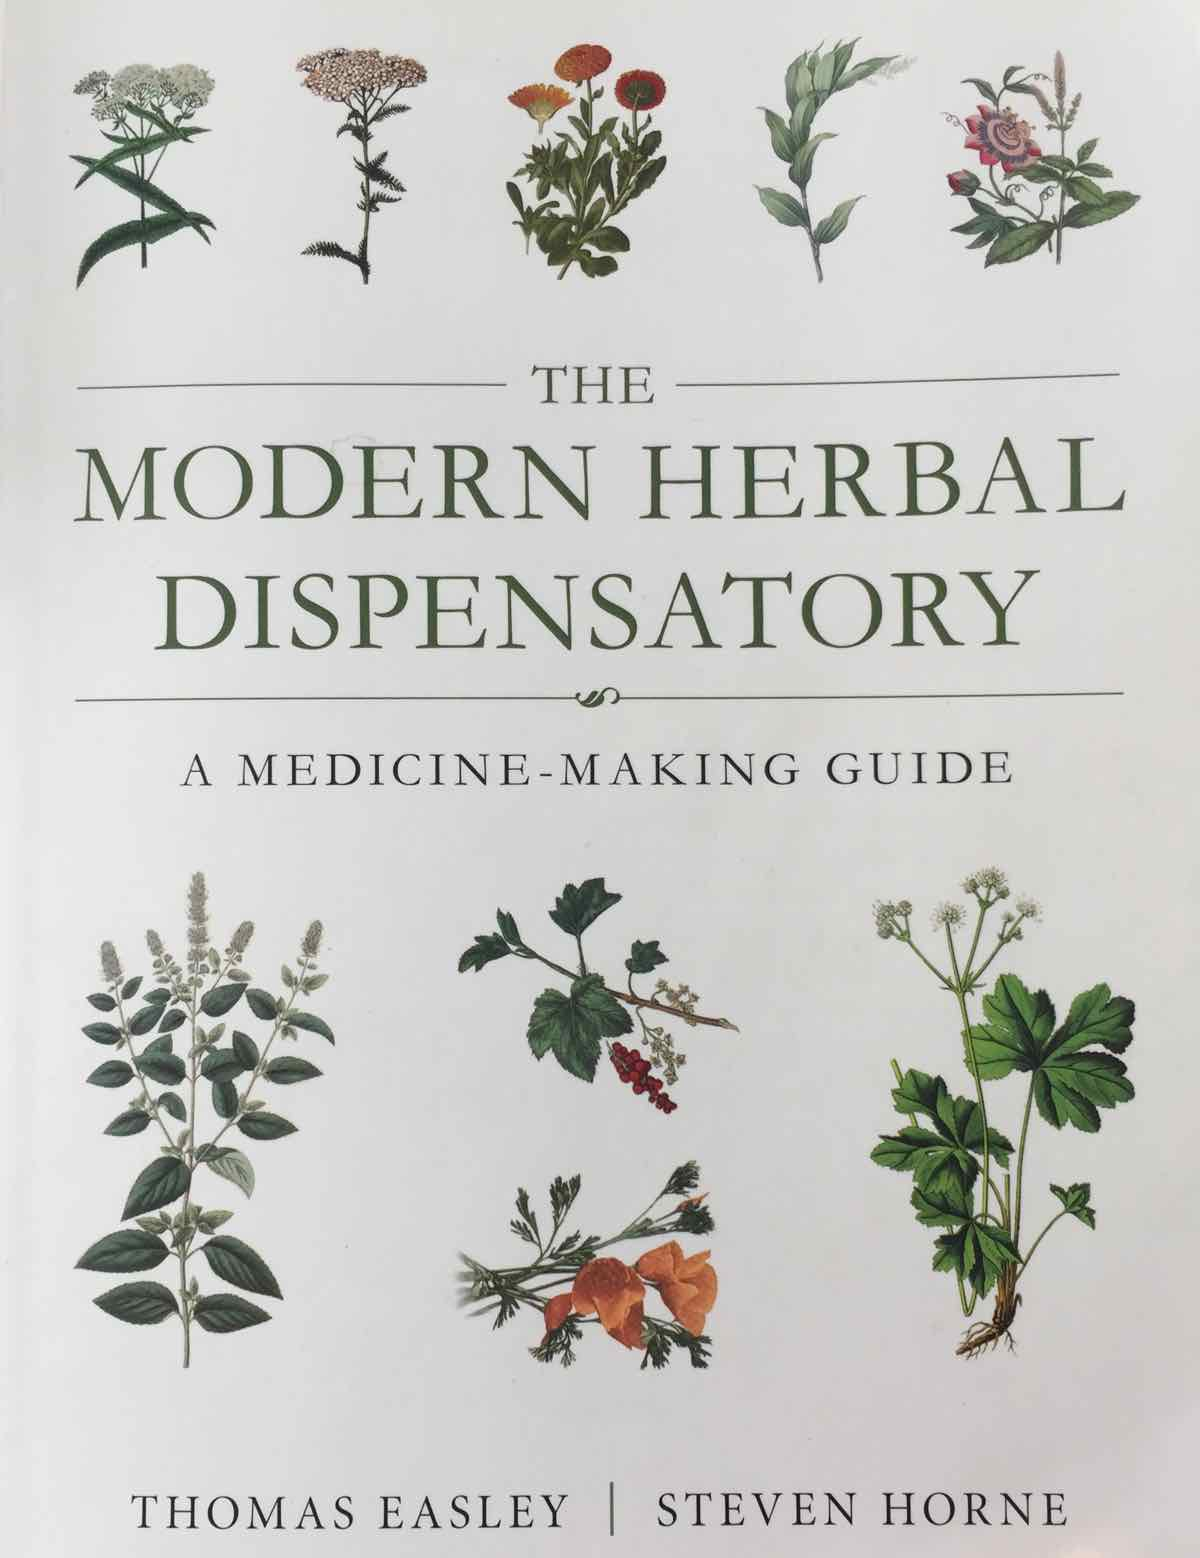 The Modern Herbal Dispensatory By Thomas Easley And Steven Horne